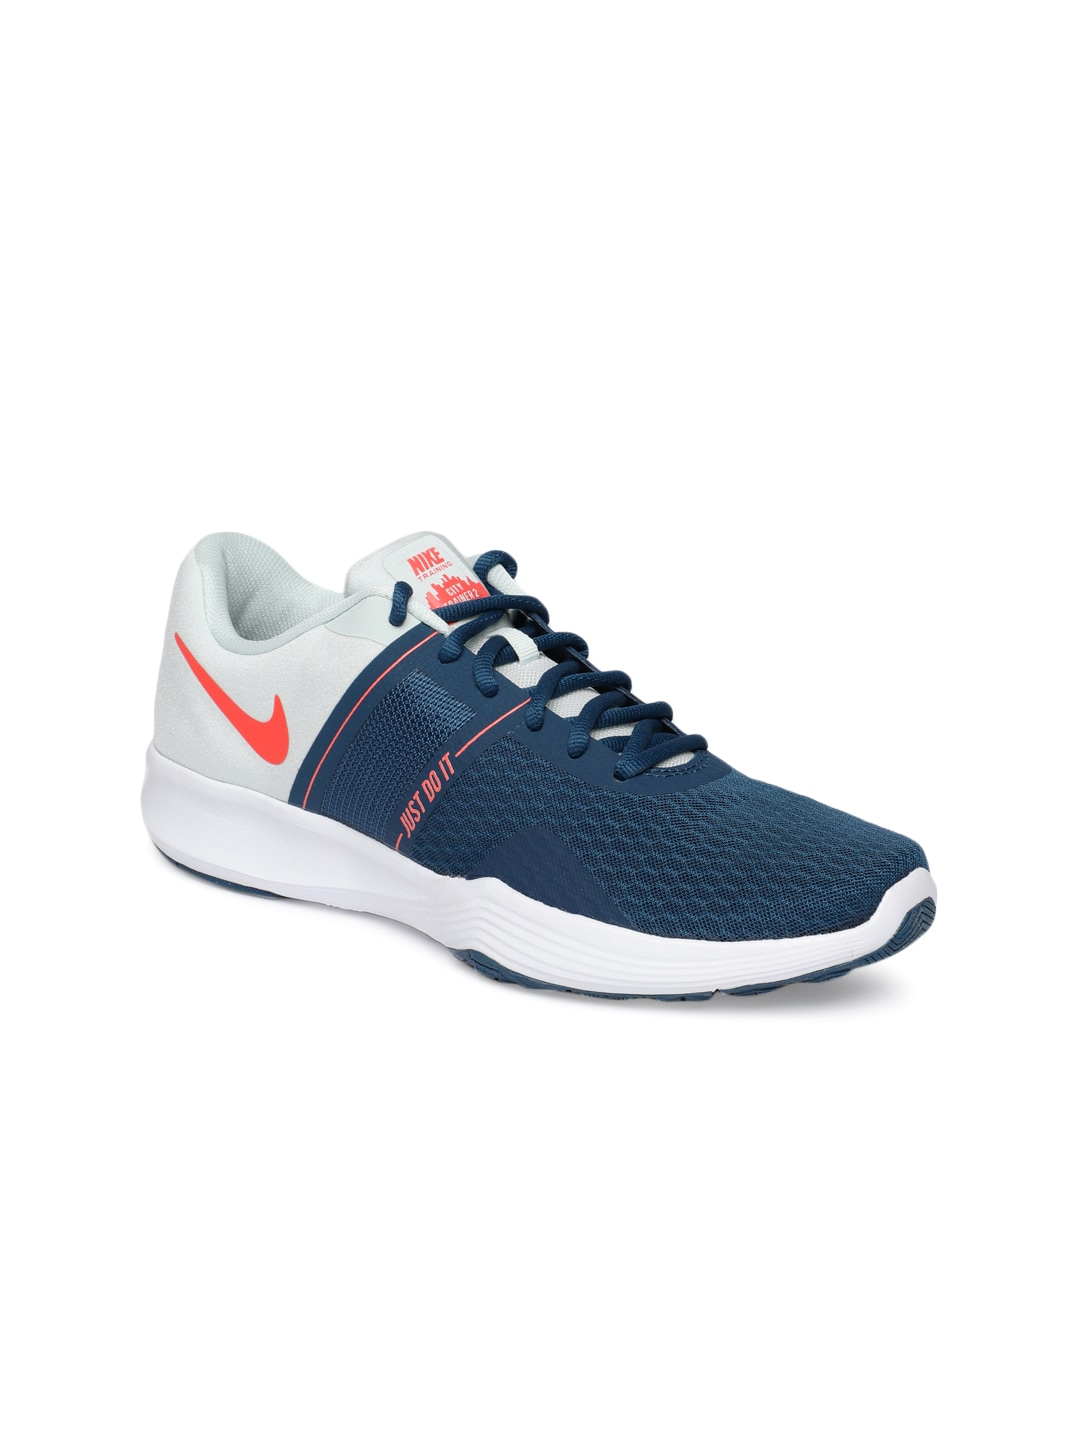 cheap for discount d22a0 25399 Nike Training Shoes - Buy Nike Training Shoes For Men   Women in India